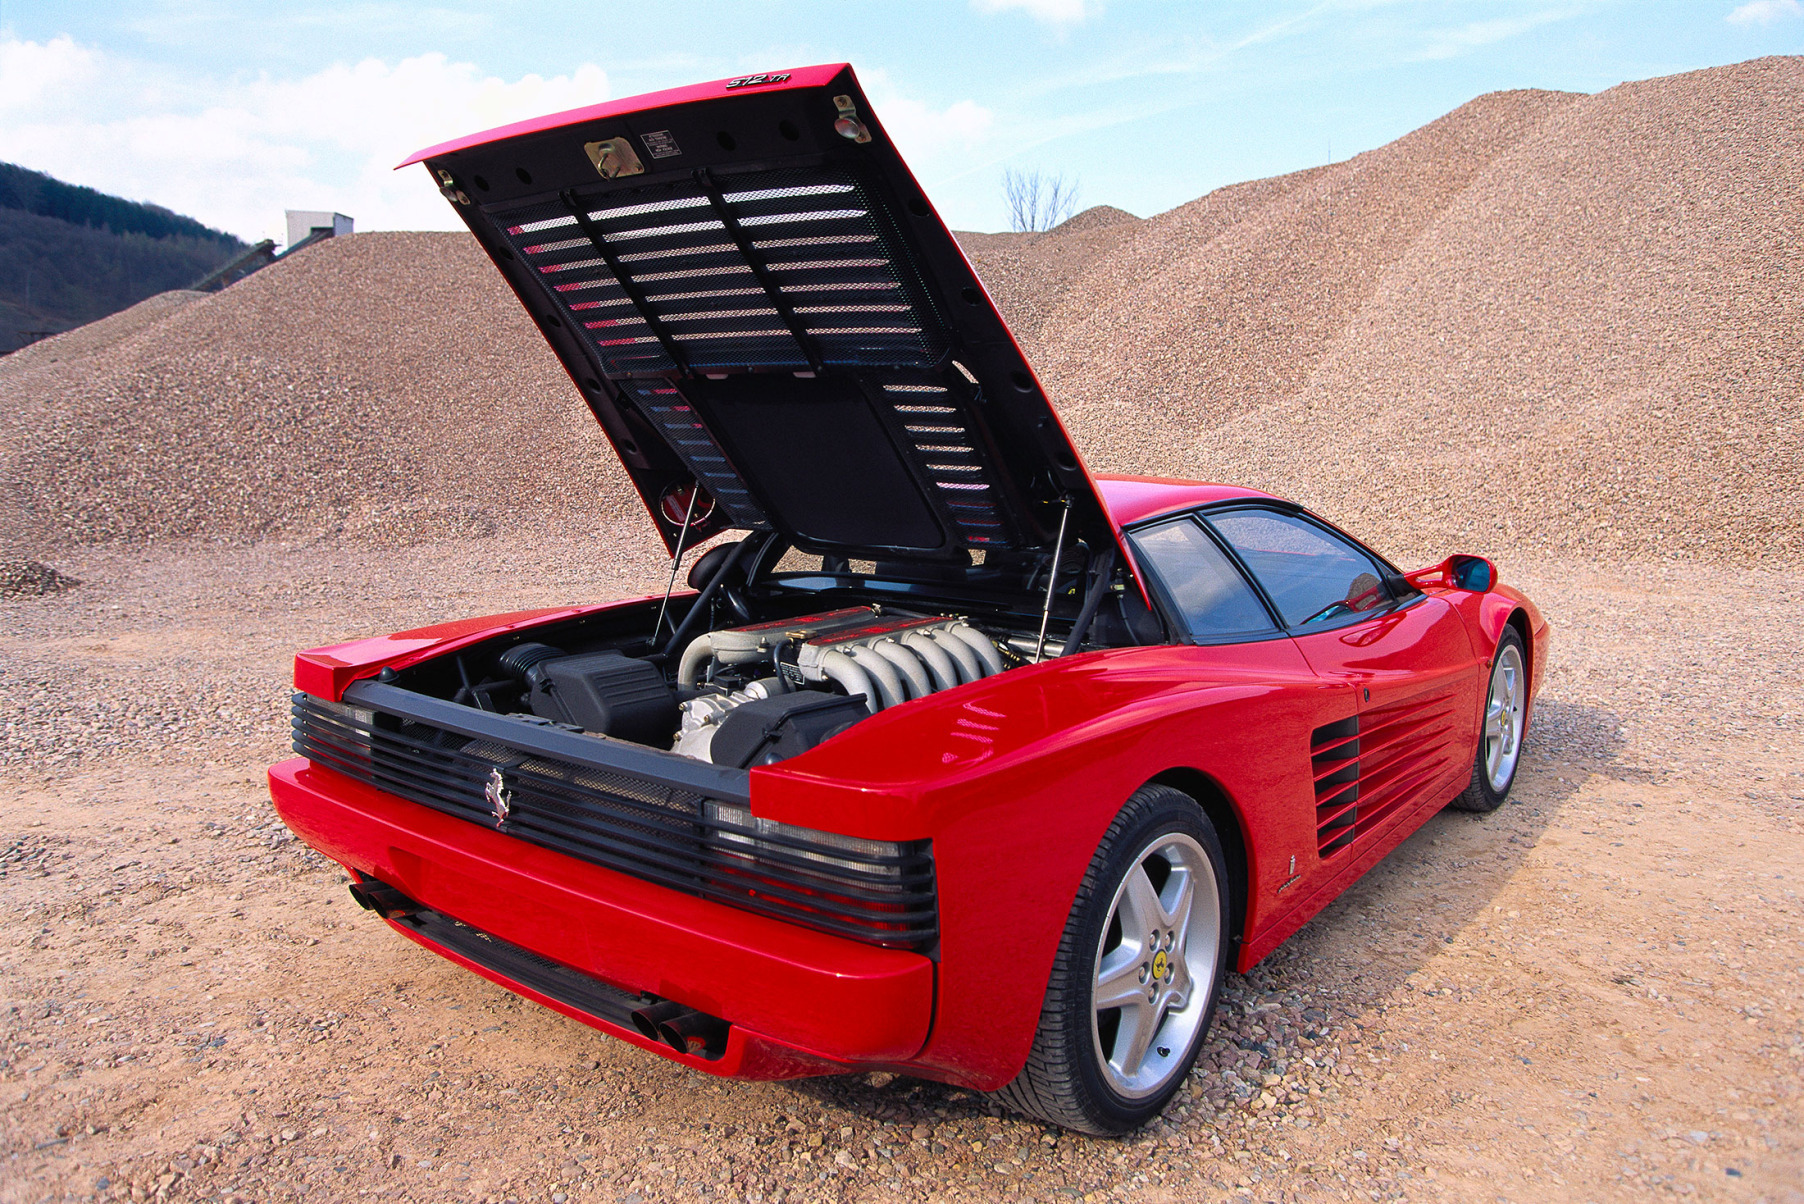 1995 ferrari testarossa gallery hd cars wallpaper noticias de camacol july 2015 1995 ferrari 512 testarossa vanachro gallery vanachro Images